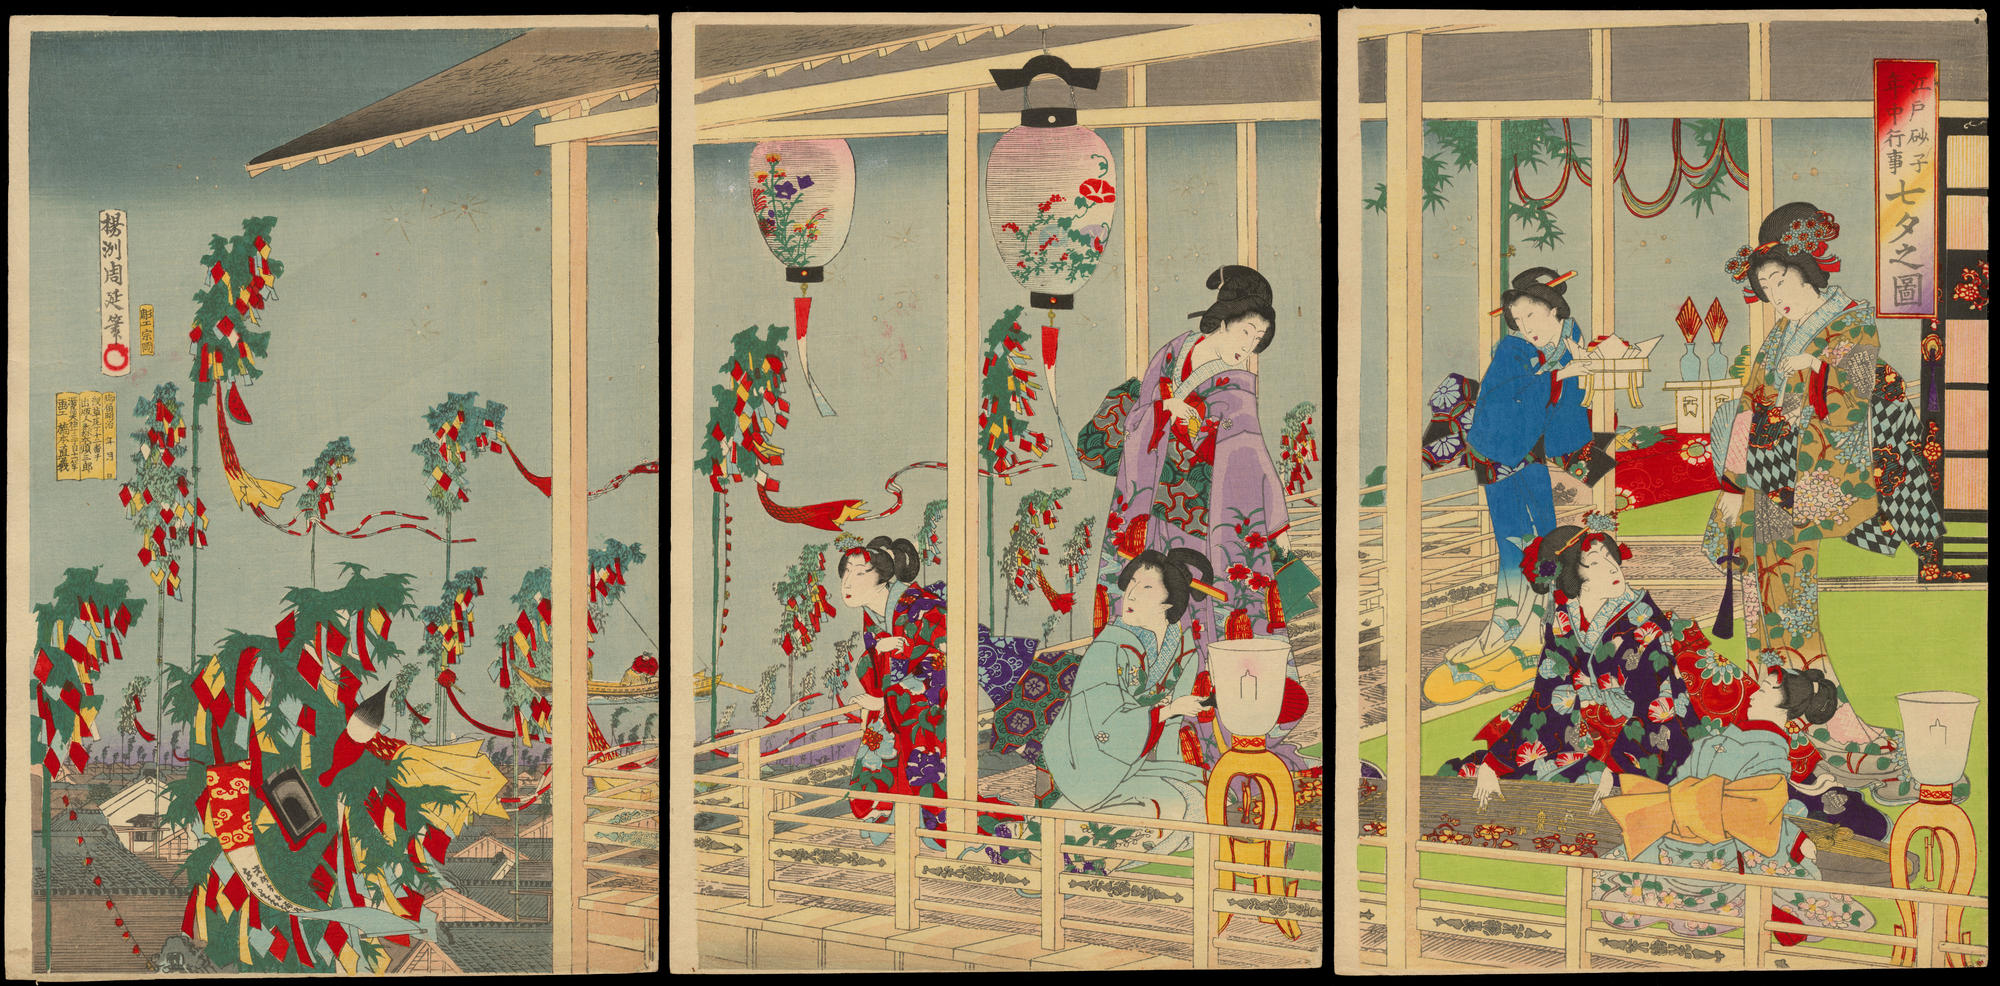 Yoshu Chikanobu Annual Events of Prosperous Edo Tanabata Festival 011384 11 05 2011 11384 X2000 also Glyptodon in addition Paul Dubois Barbedienne Military Courage Bronze 12221647 moreover History Of The Fireplace likewise Earth history c9 triassic. on early modern period